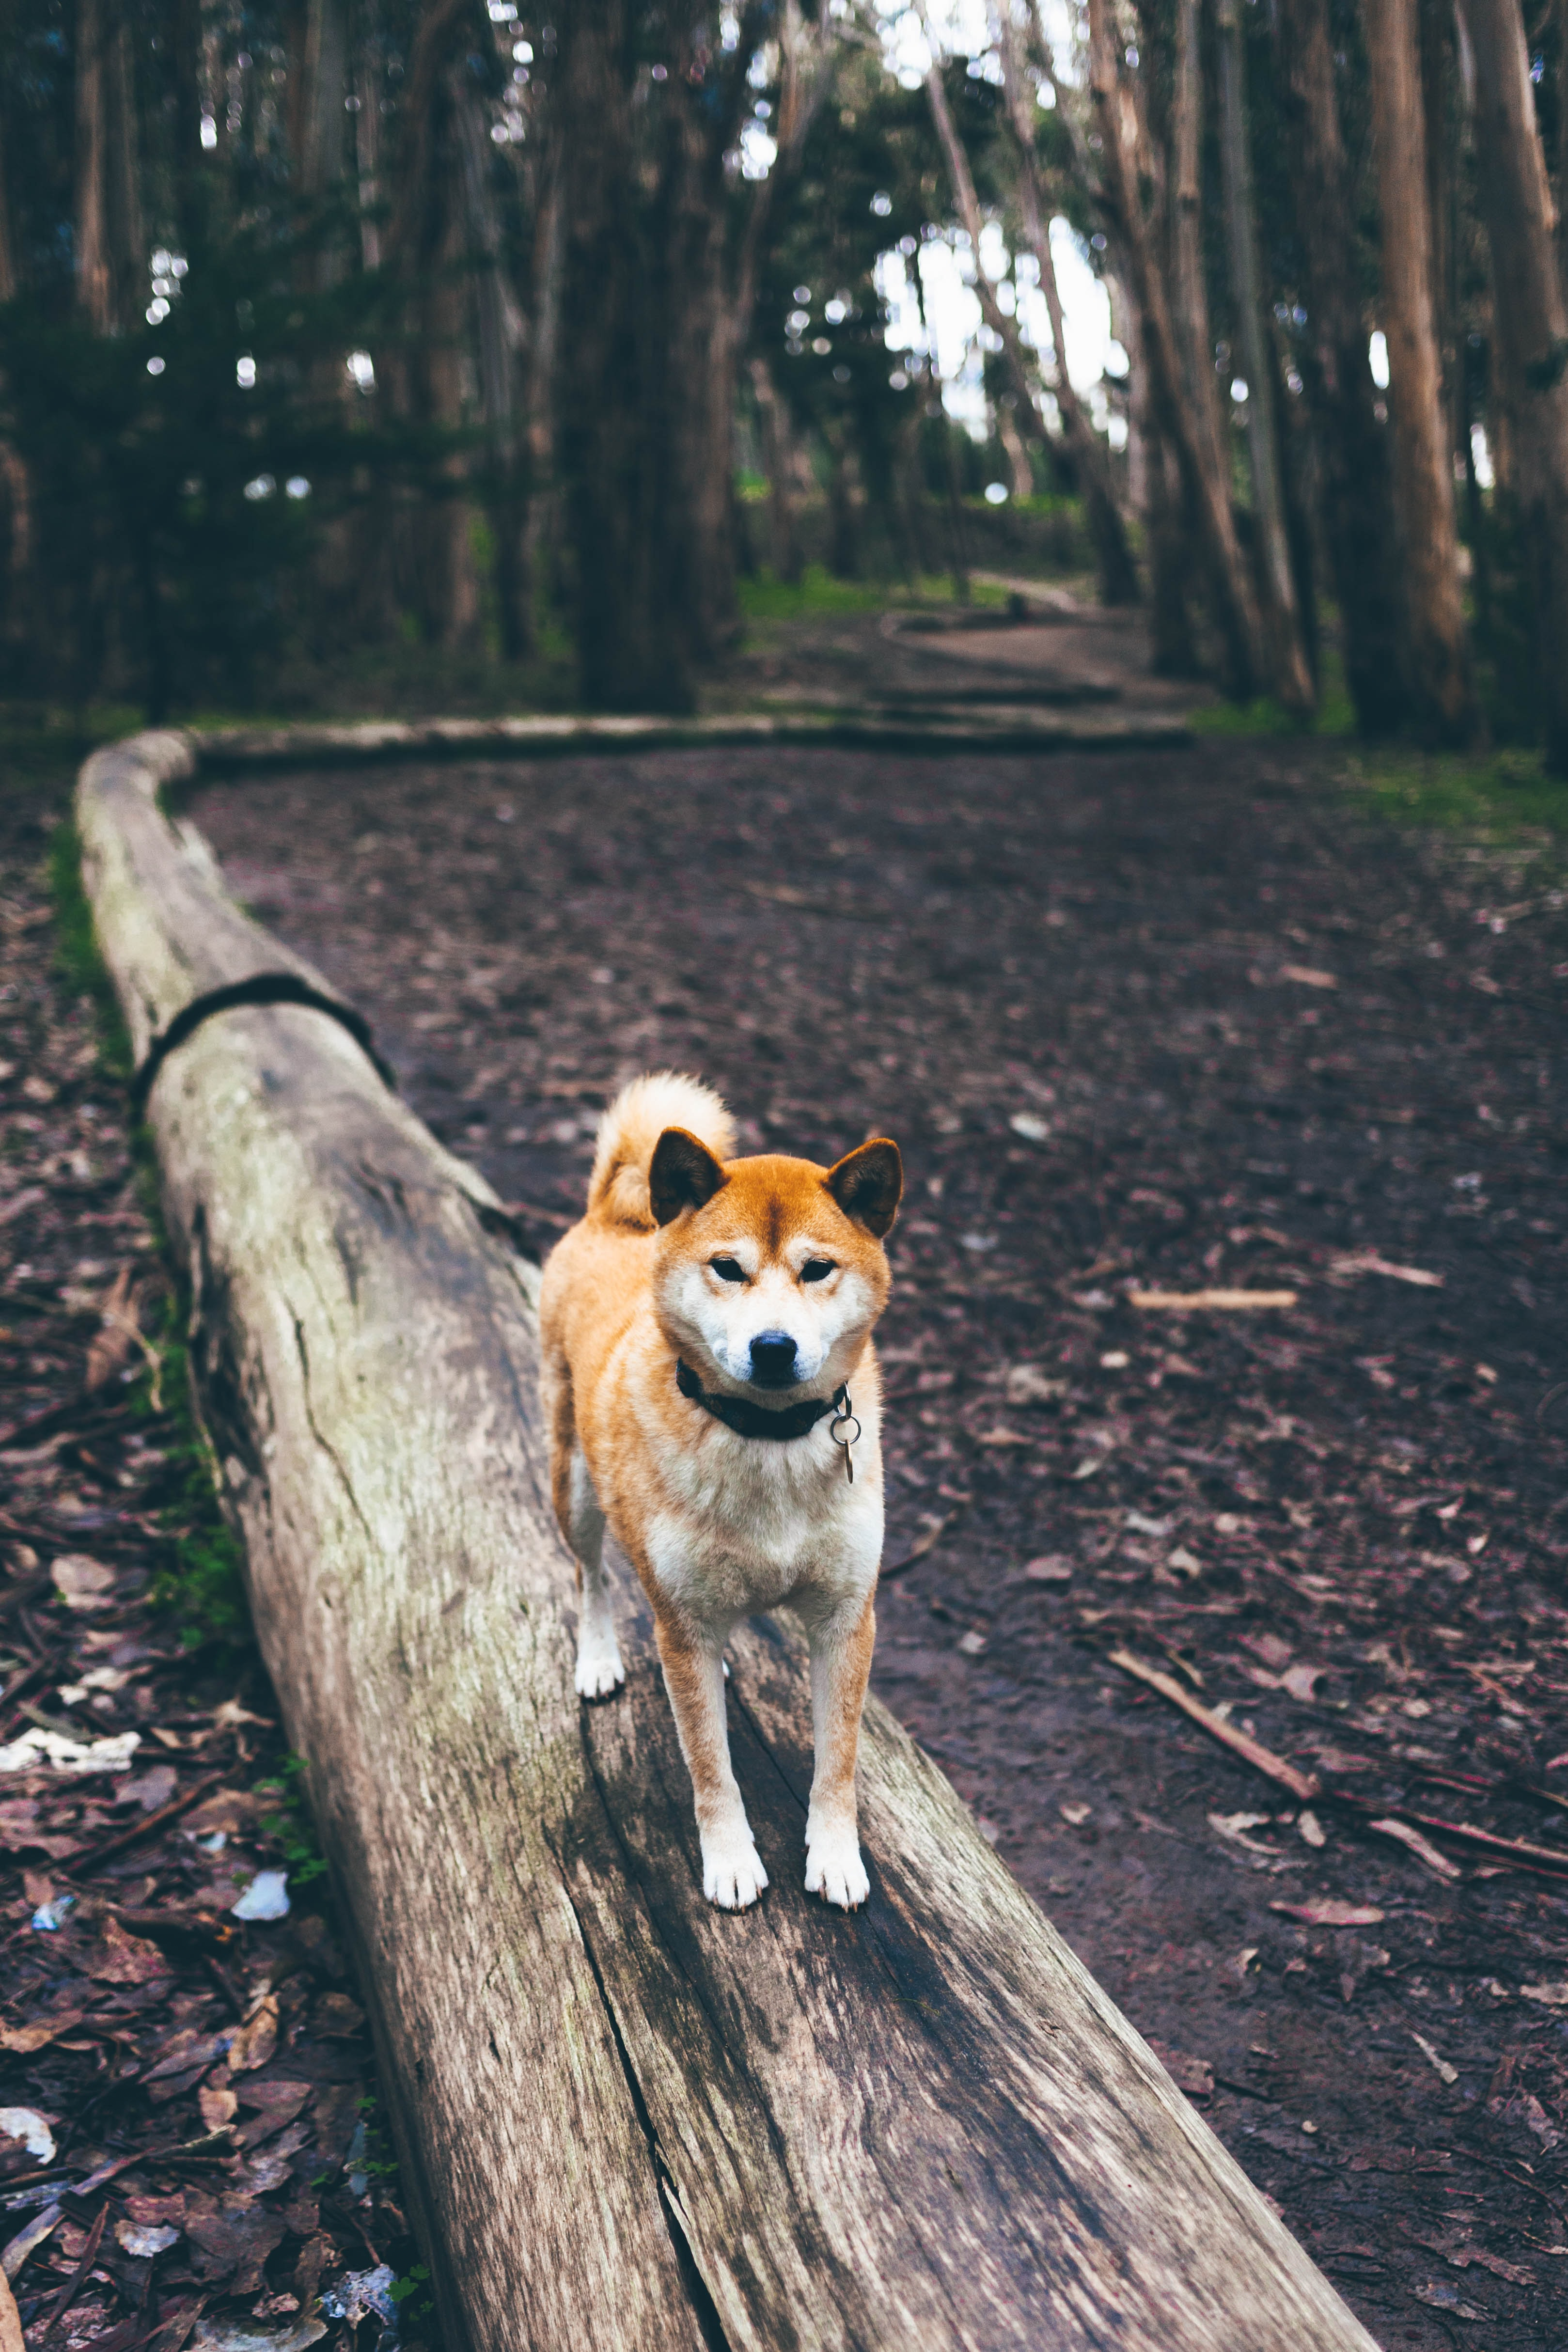 A dog standing on a log in a forest called Lover's Lane